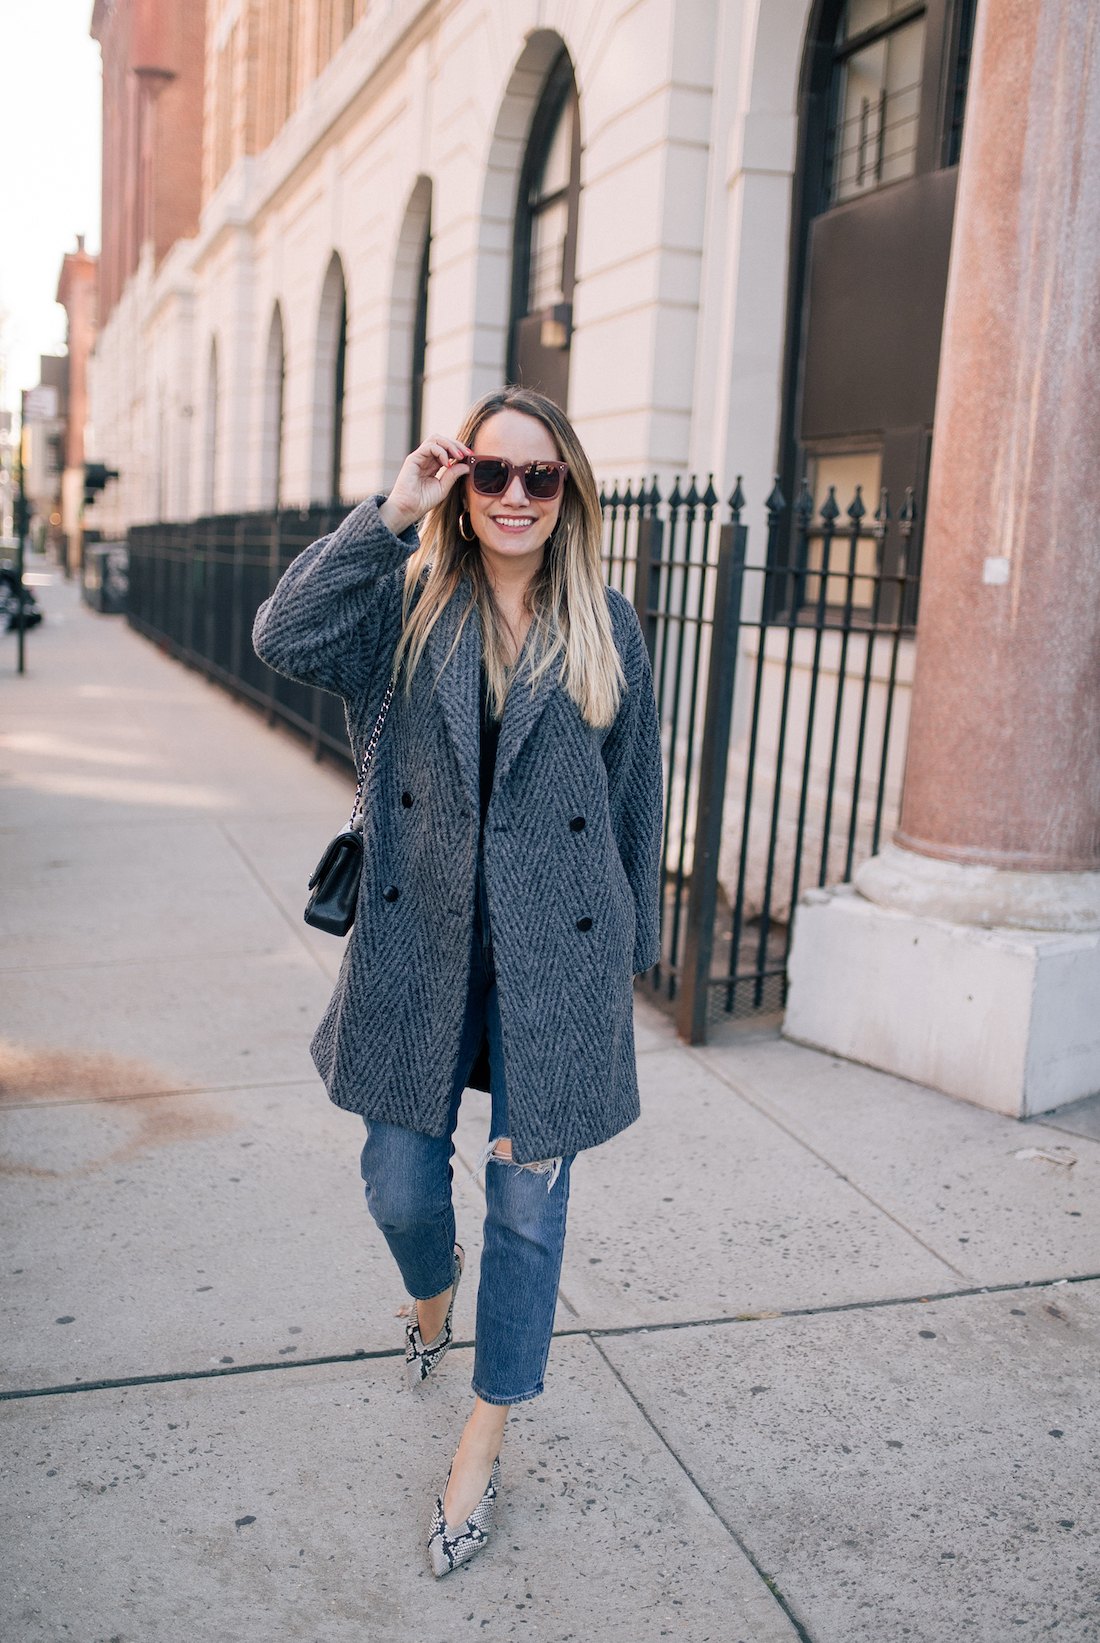 menswear style - My Favorite Coats for Fall